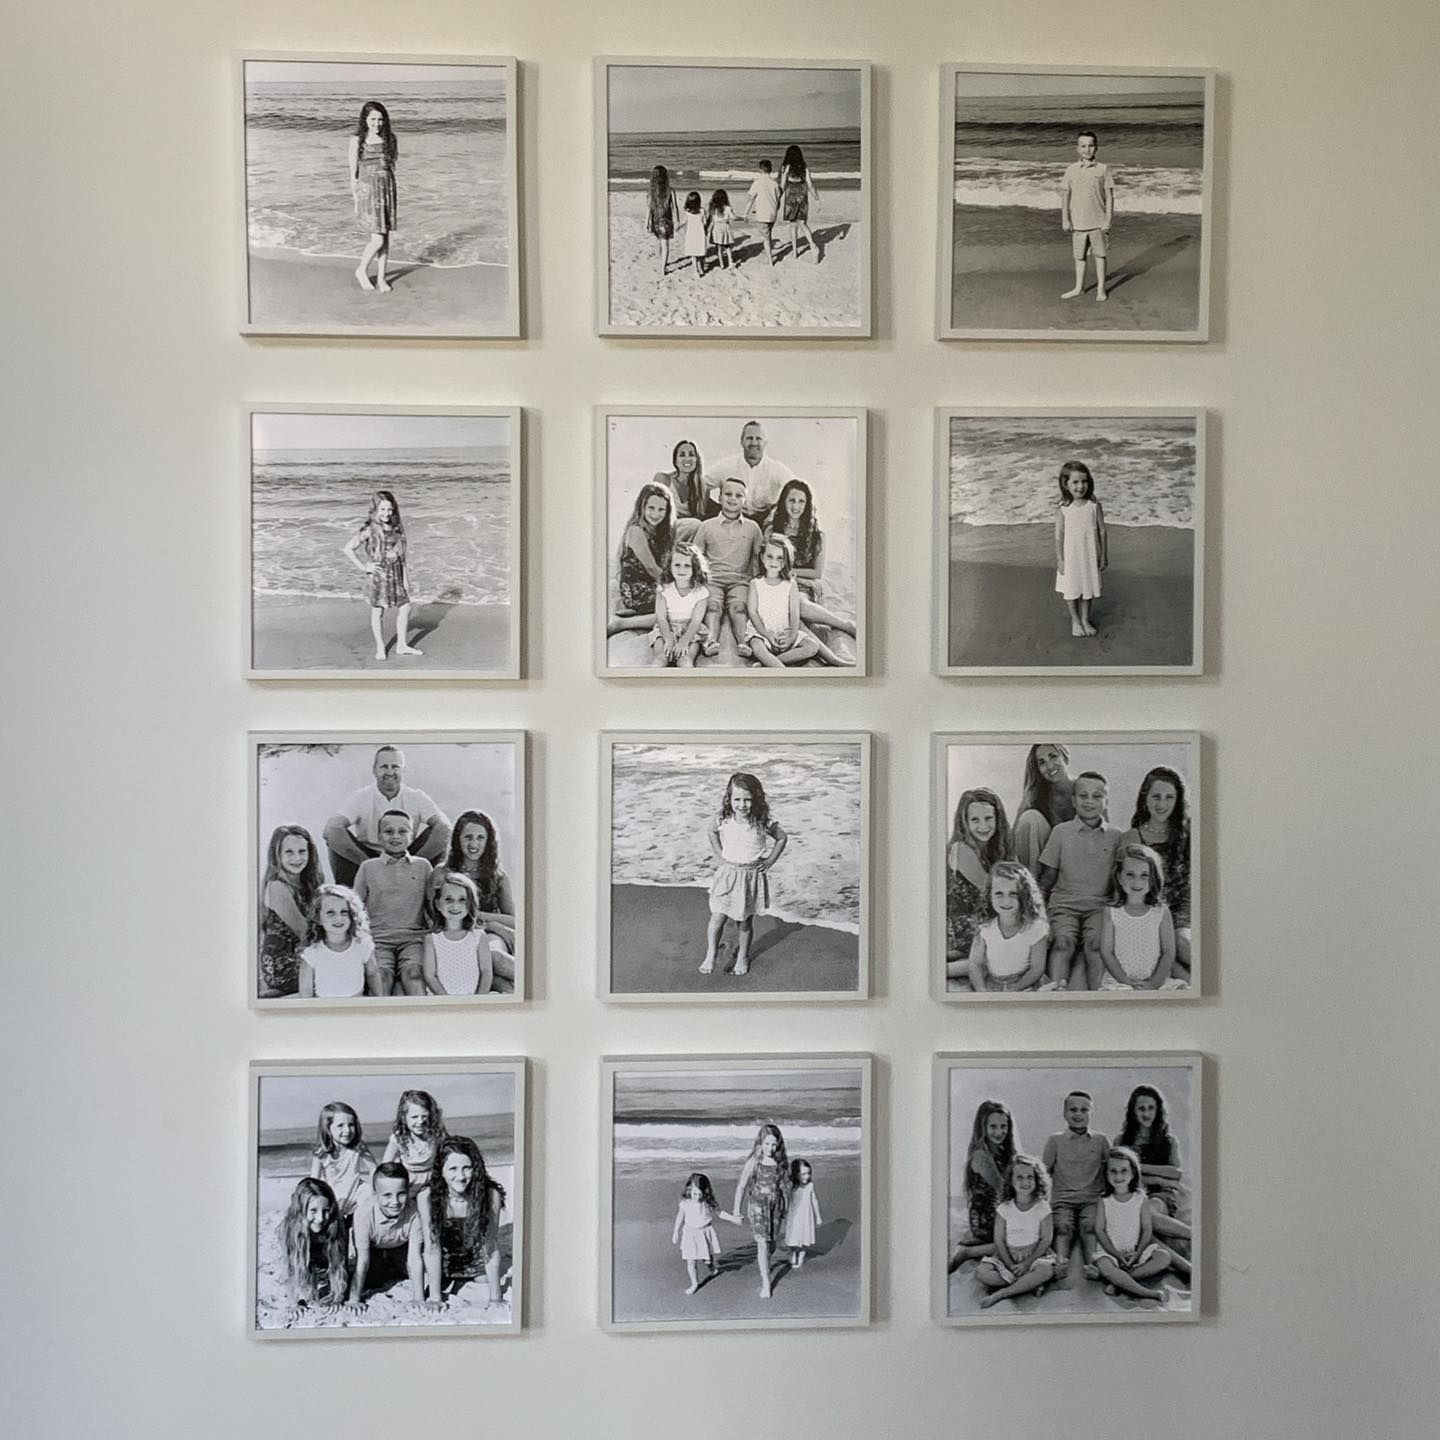 Would you prefer a wall in color or in black and white? Photo via IG:  riggs_interiors in 2020 | Black and white photo wall, Photo wall design,  Photo wall